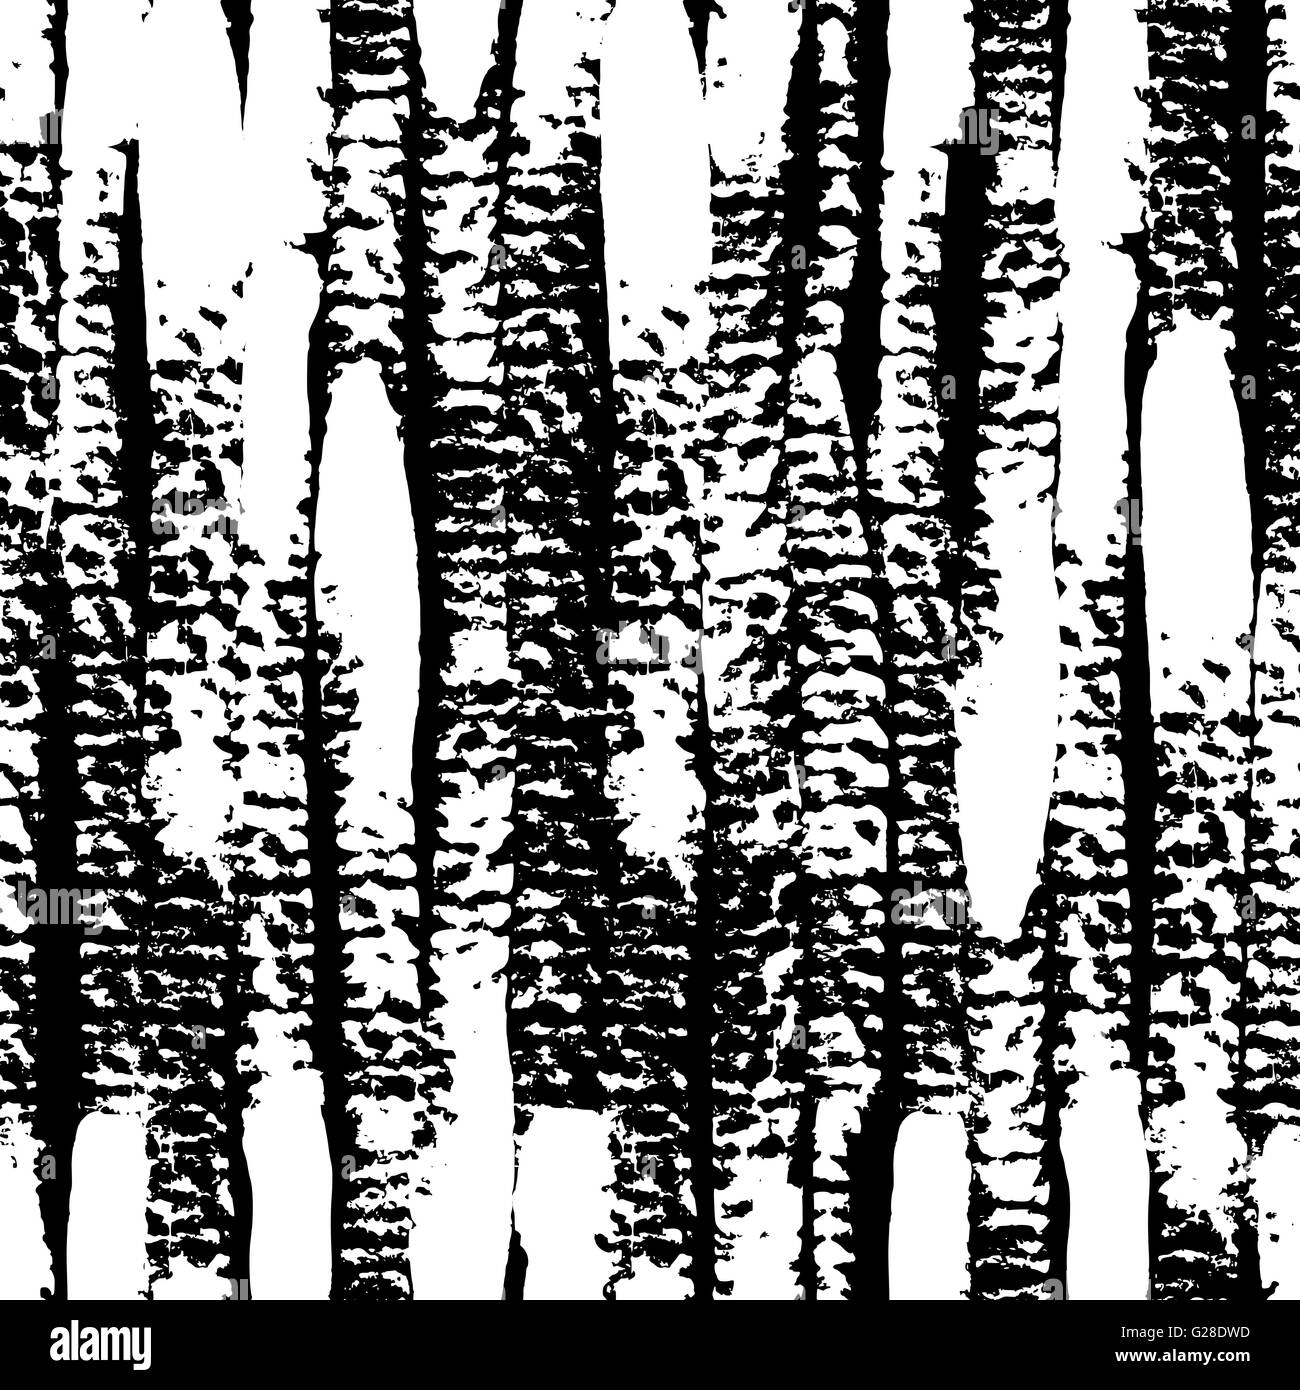 Hand Painted Vertical Brush Strokes Decorative Texture In Black And White.  Seamless Abstract Monochrome Repeating Background.